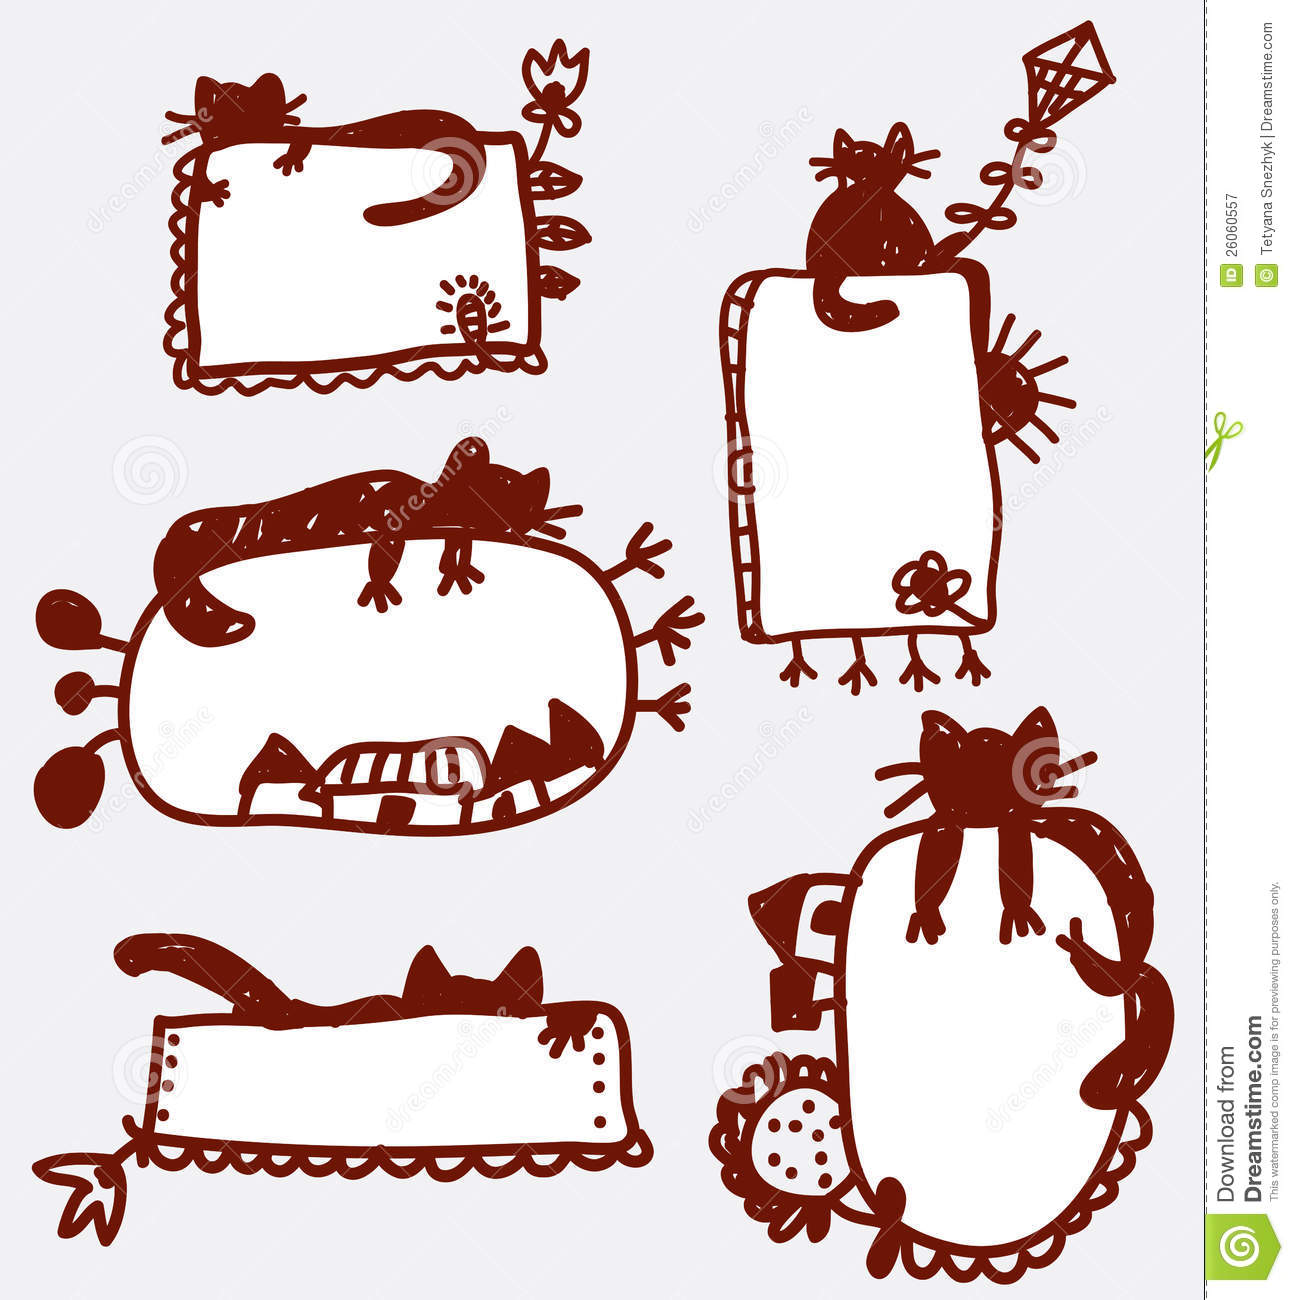 doodle funny frames with cat royalty free stock photography